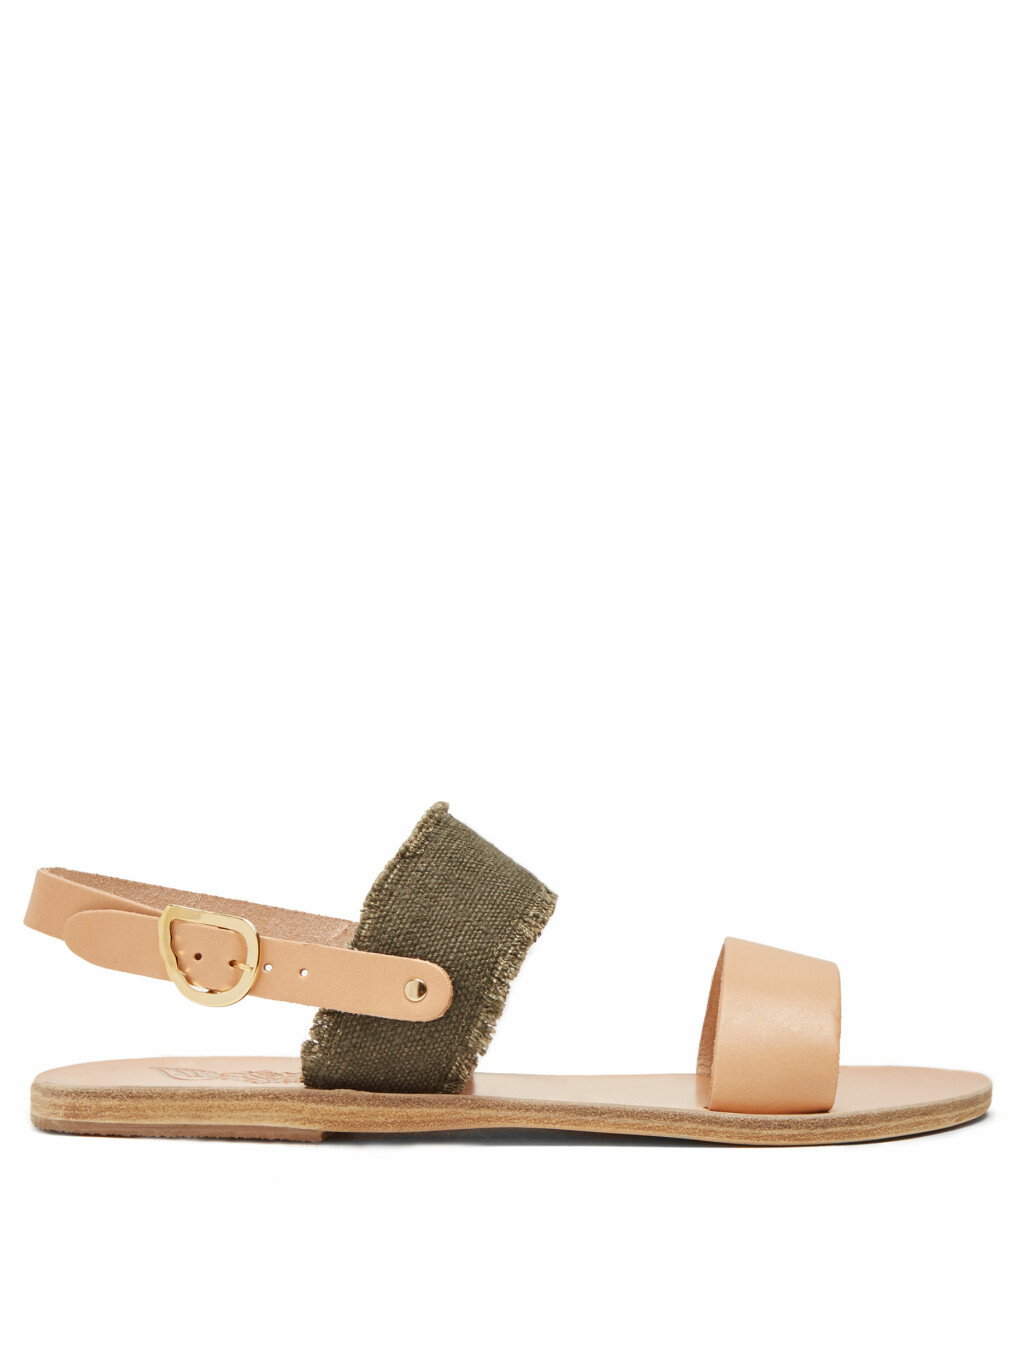 Sandaler fra Ancient Greek Sandals via Matchesfashion | kr 1155